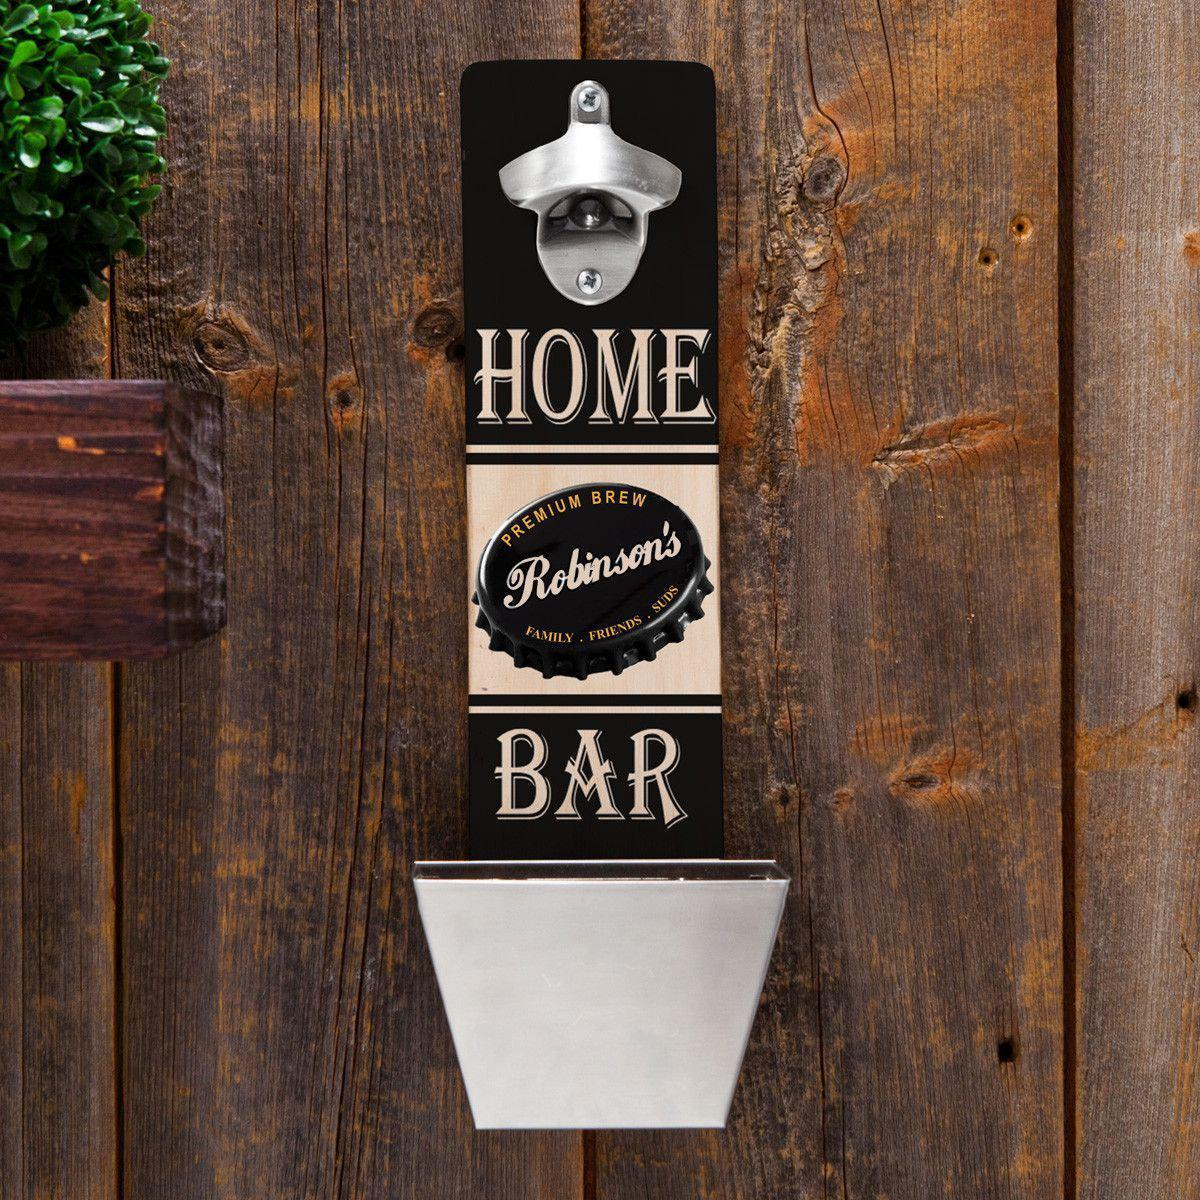 Personalized Wall Mounted Bottle Opener - Premium Brew